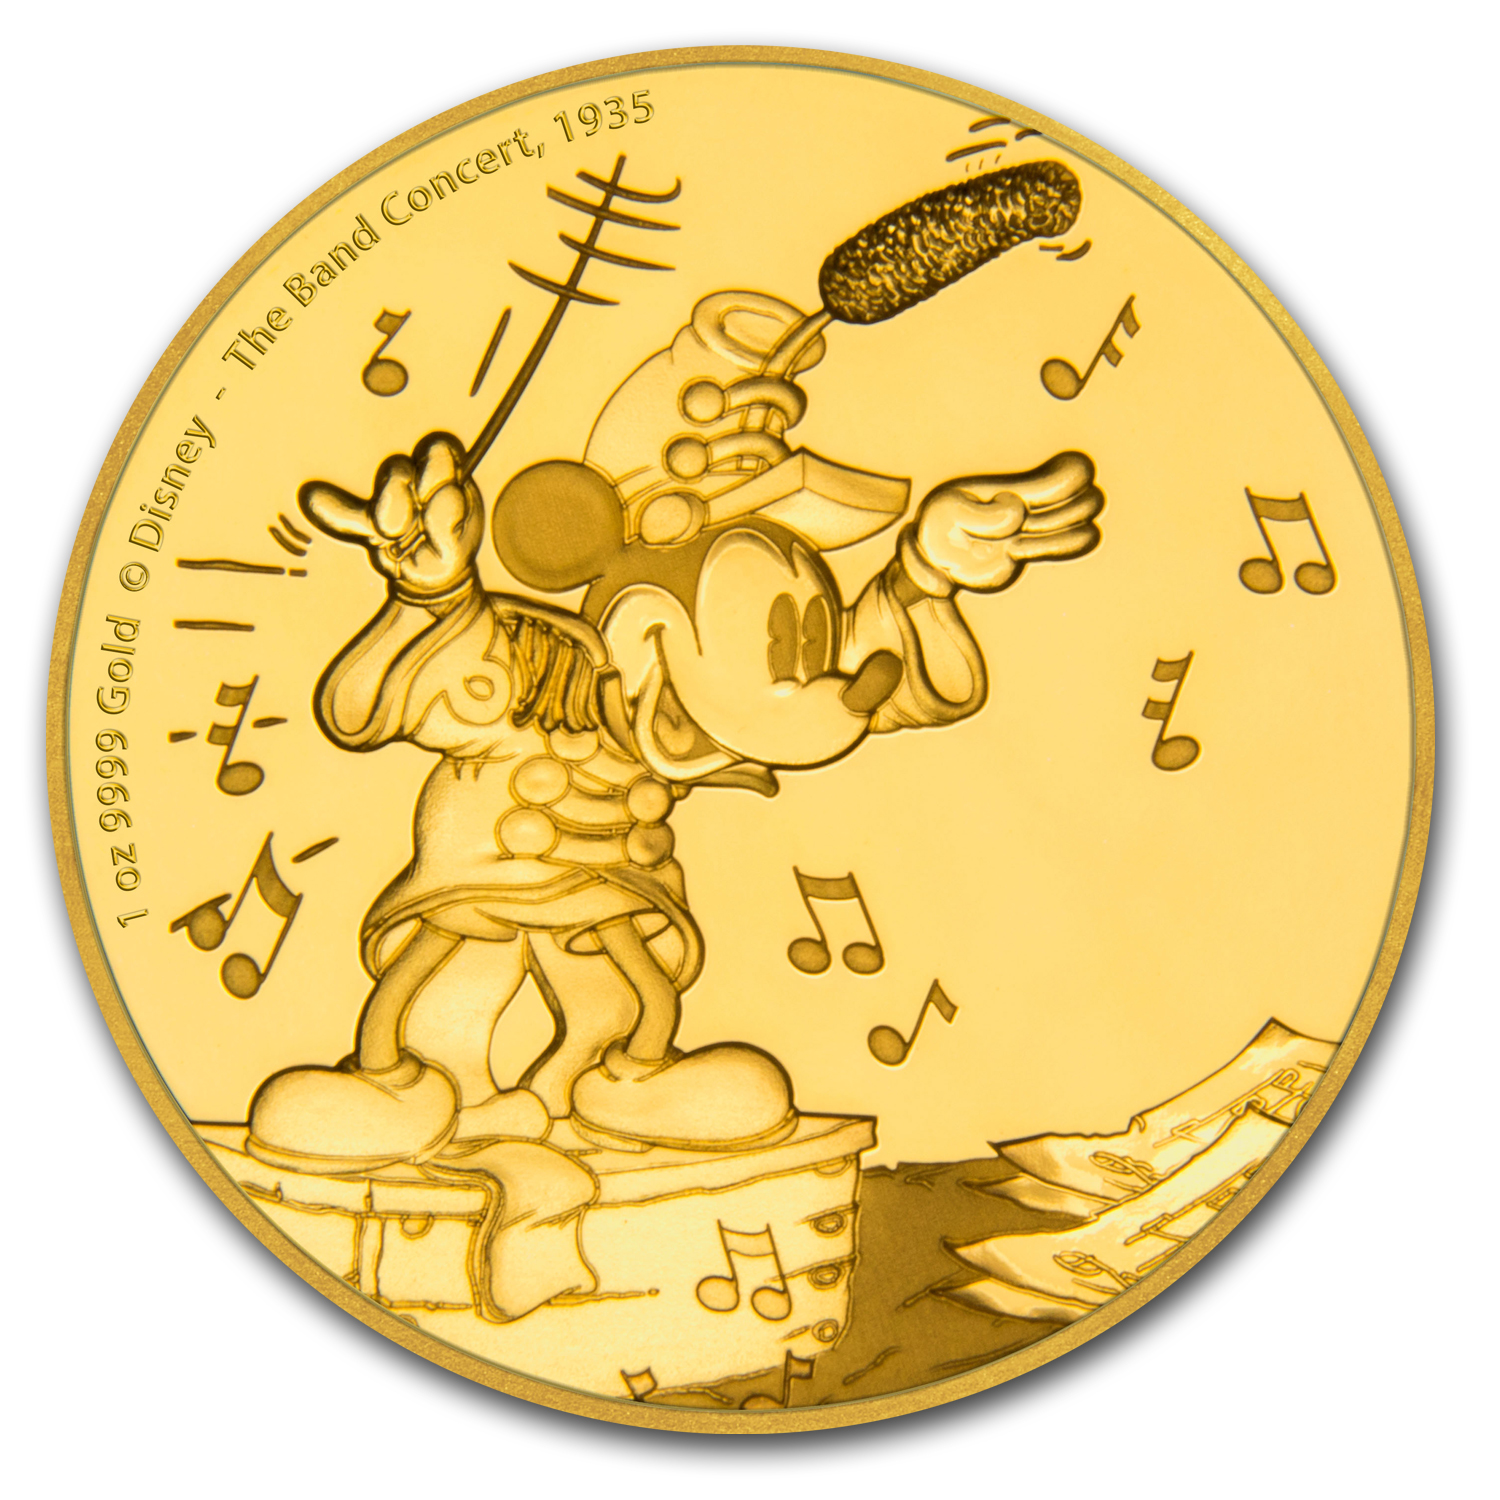 2016 Niue 1 oz Gold $250 Mickey Through the Ages: Band Concert